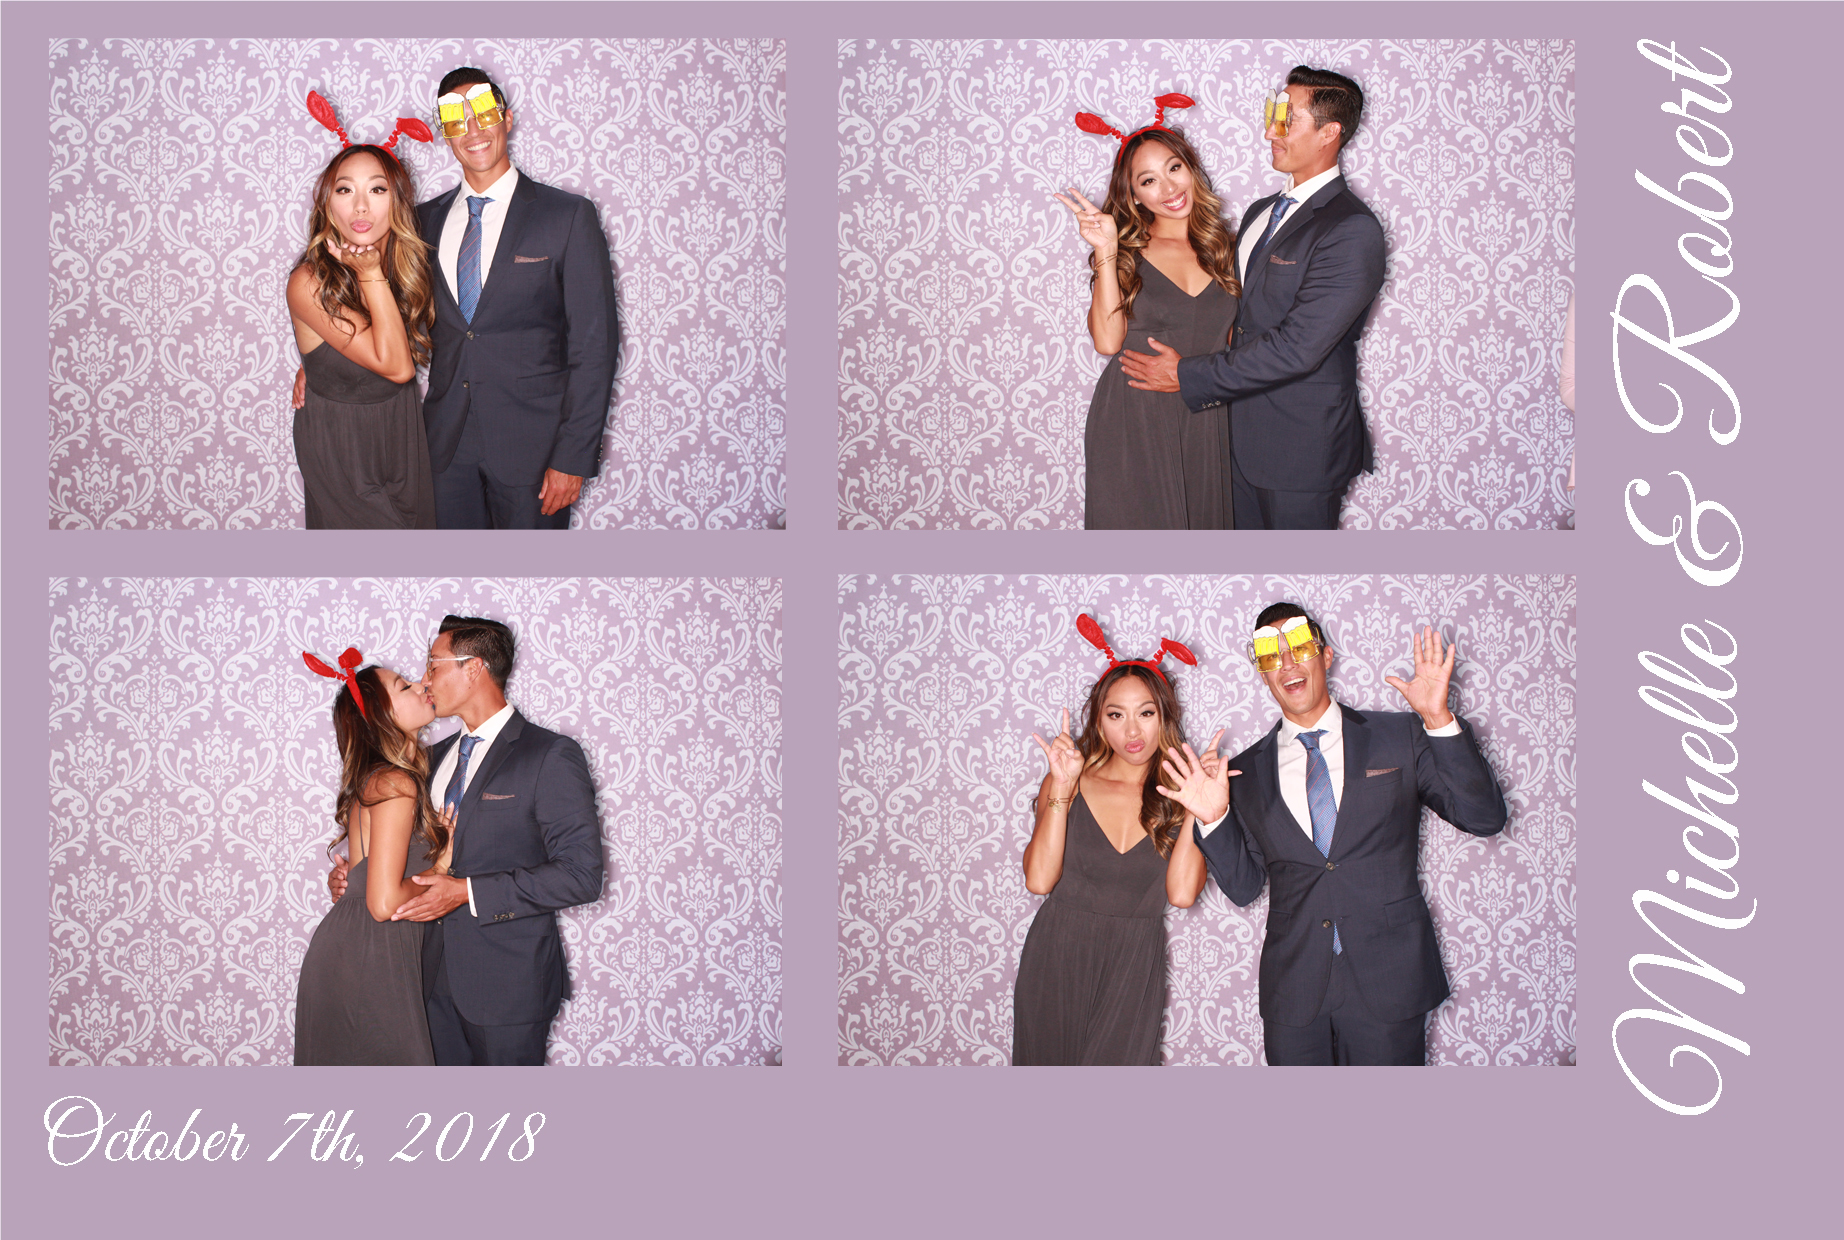 Photo Booth Photo Prints